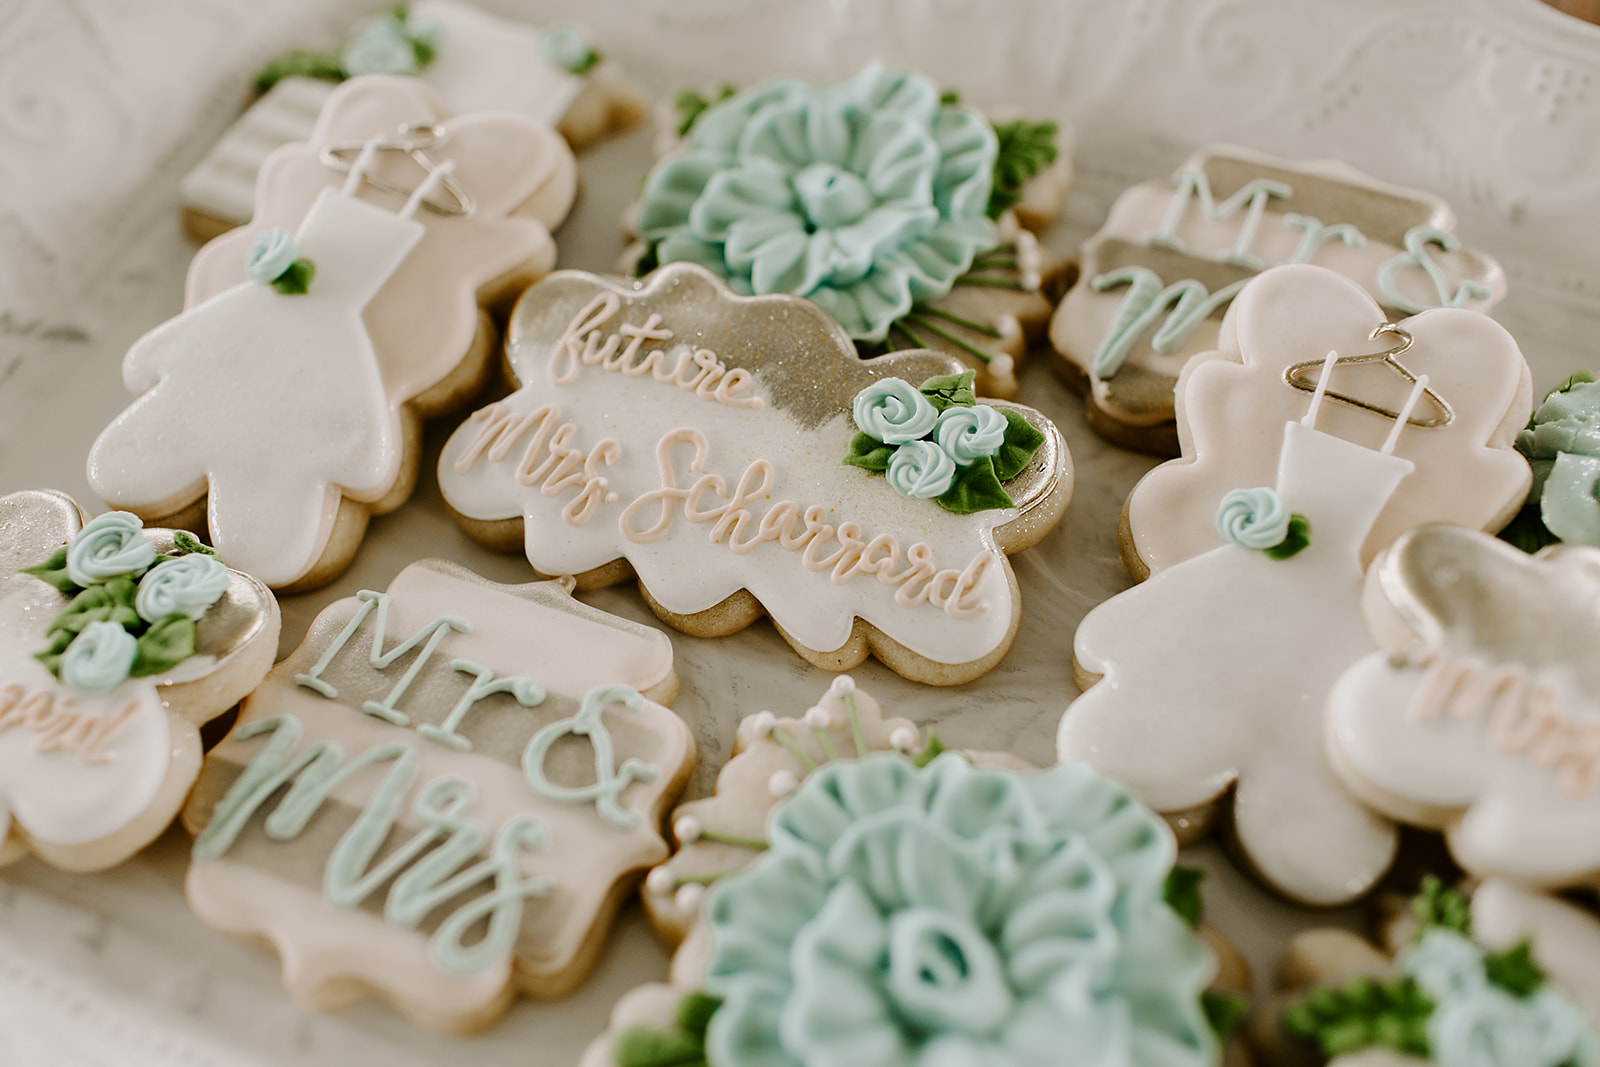 Kendra_and_Mattew_Indiana_Wedding_by_Emily_Wehner2-3.jpg